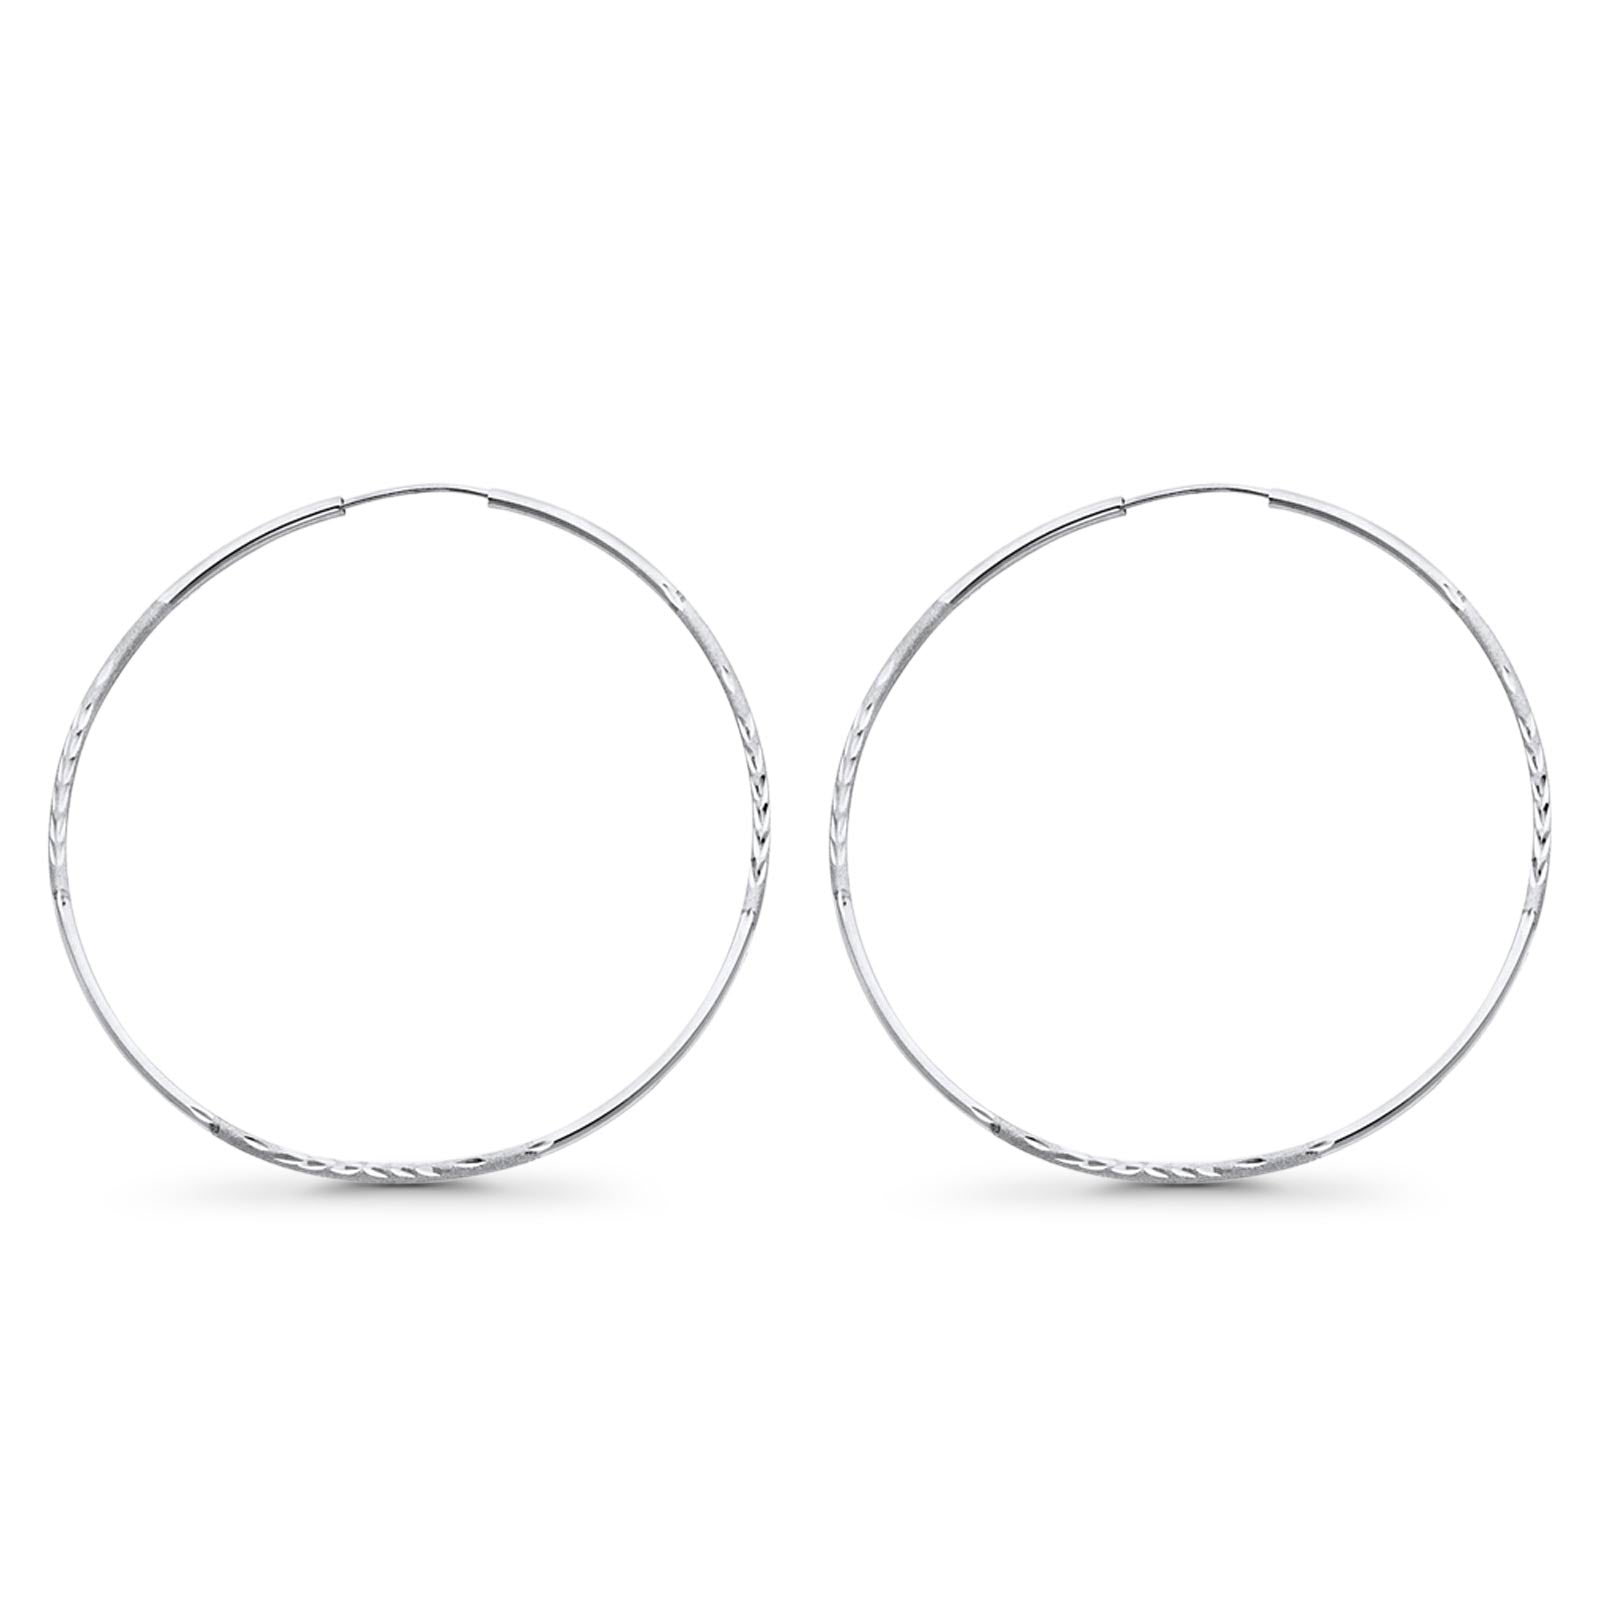 White 14K Gold Real 1.5mm Diamond Cut Snap Closure Hoop Earrings Endless 2grams 55mm